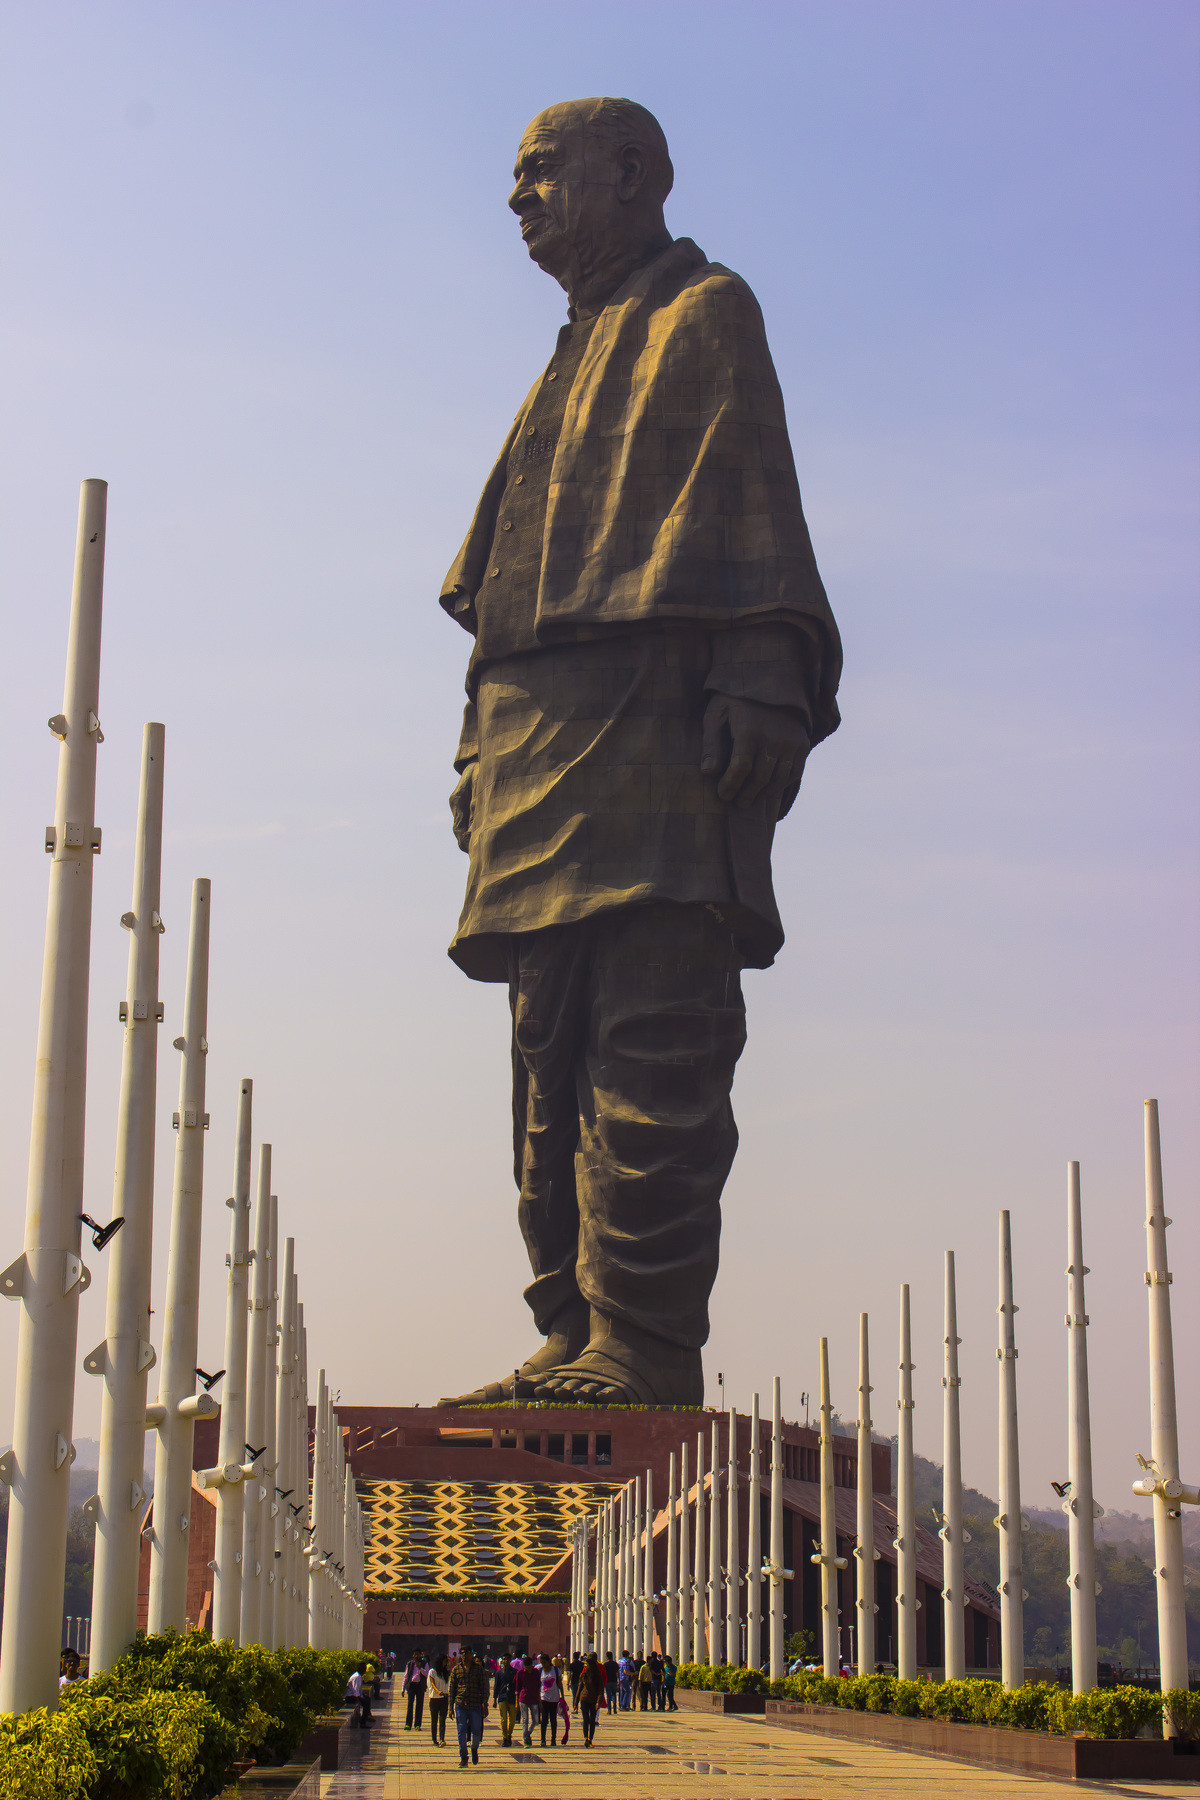 Let's see you s topple this!. Statue of Unity ofUnity.. Made in India ... I don't know what that means